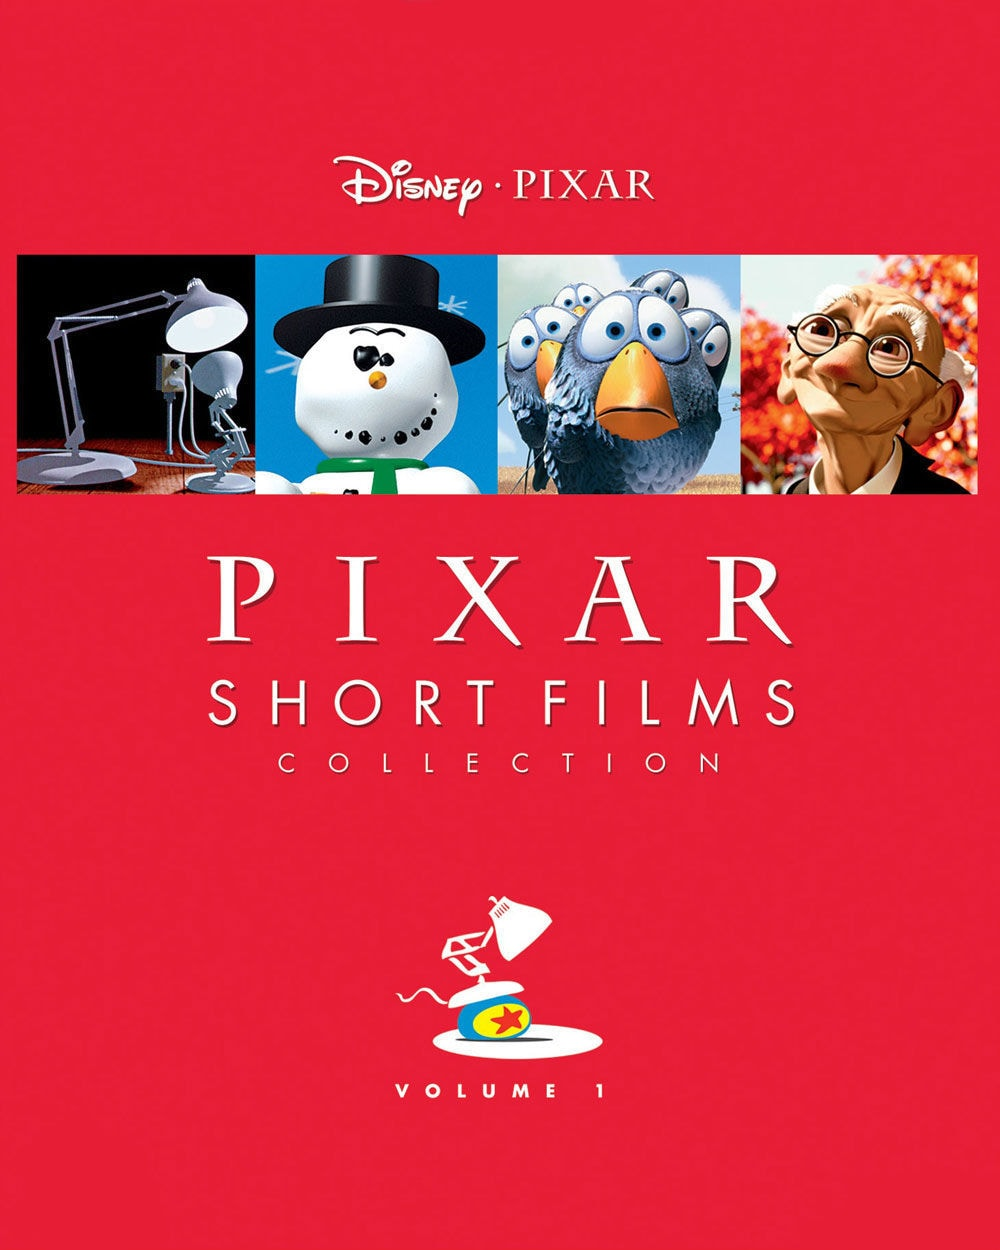 pixar short films collection, vol. 1 | disney movies